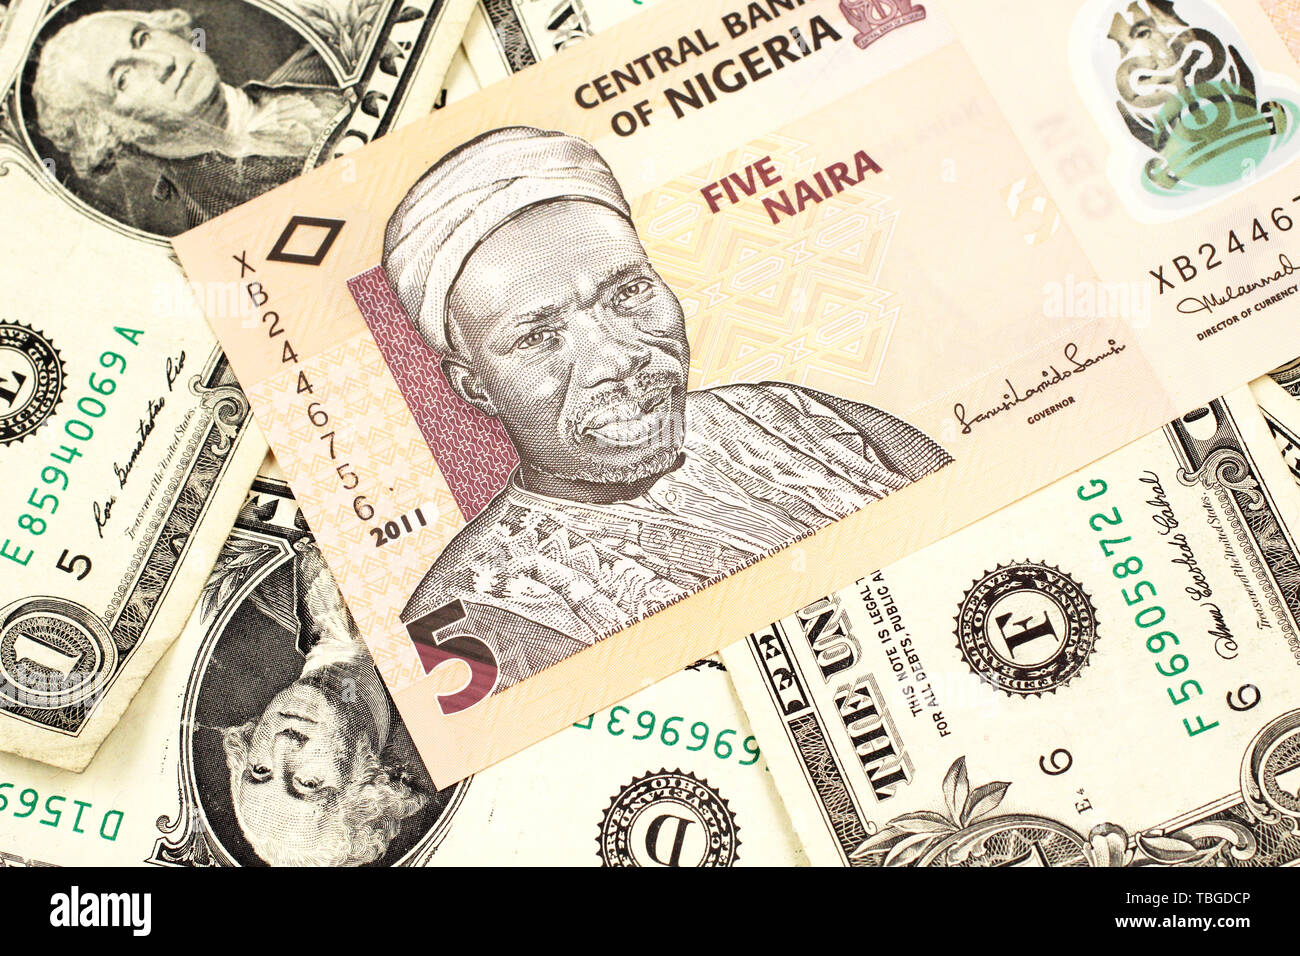 A close up image of a peach colored, five Nigerian naira bank note on a background of American one dollar bills - Stock Image